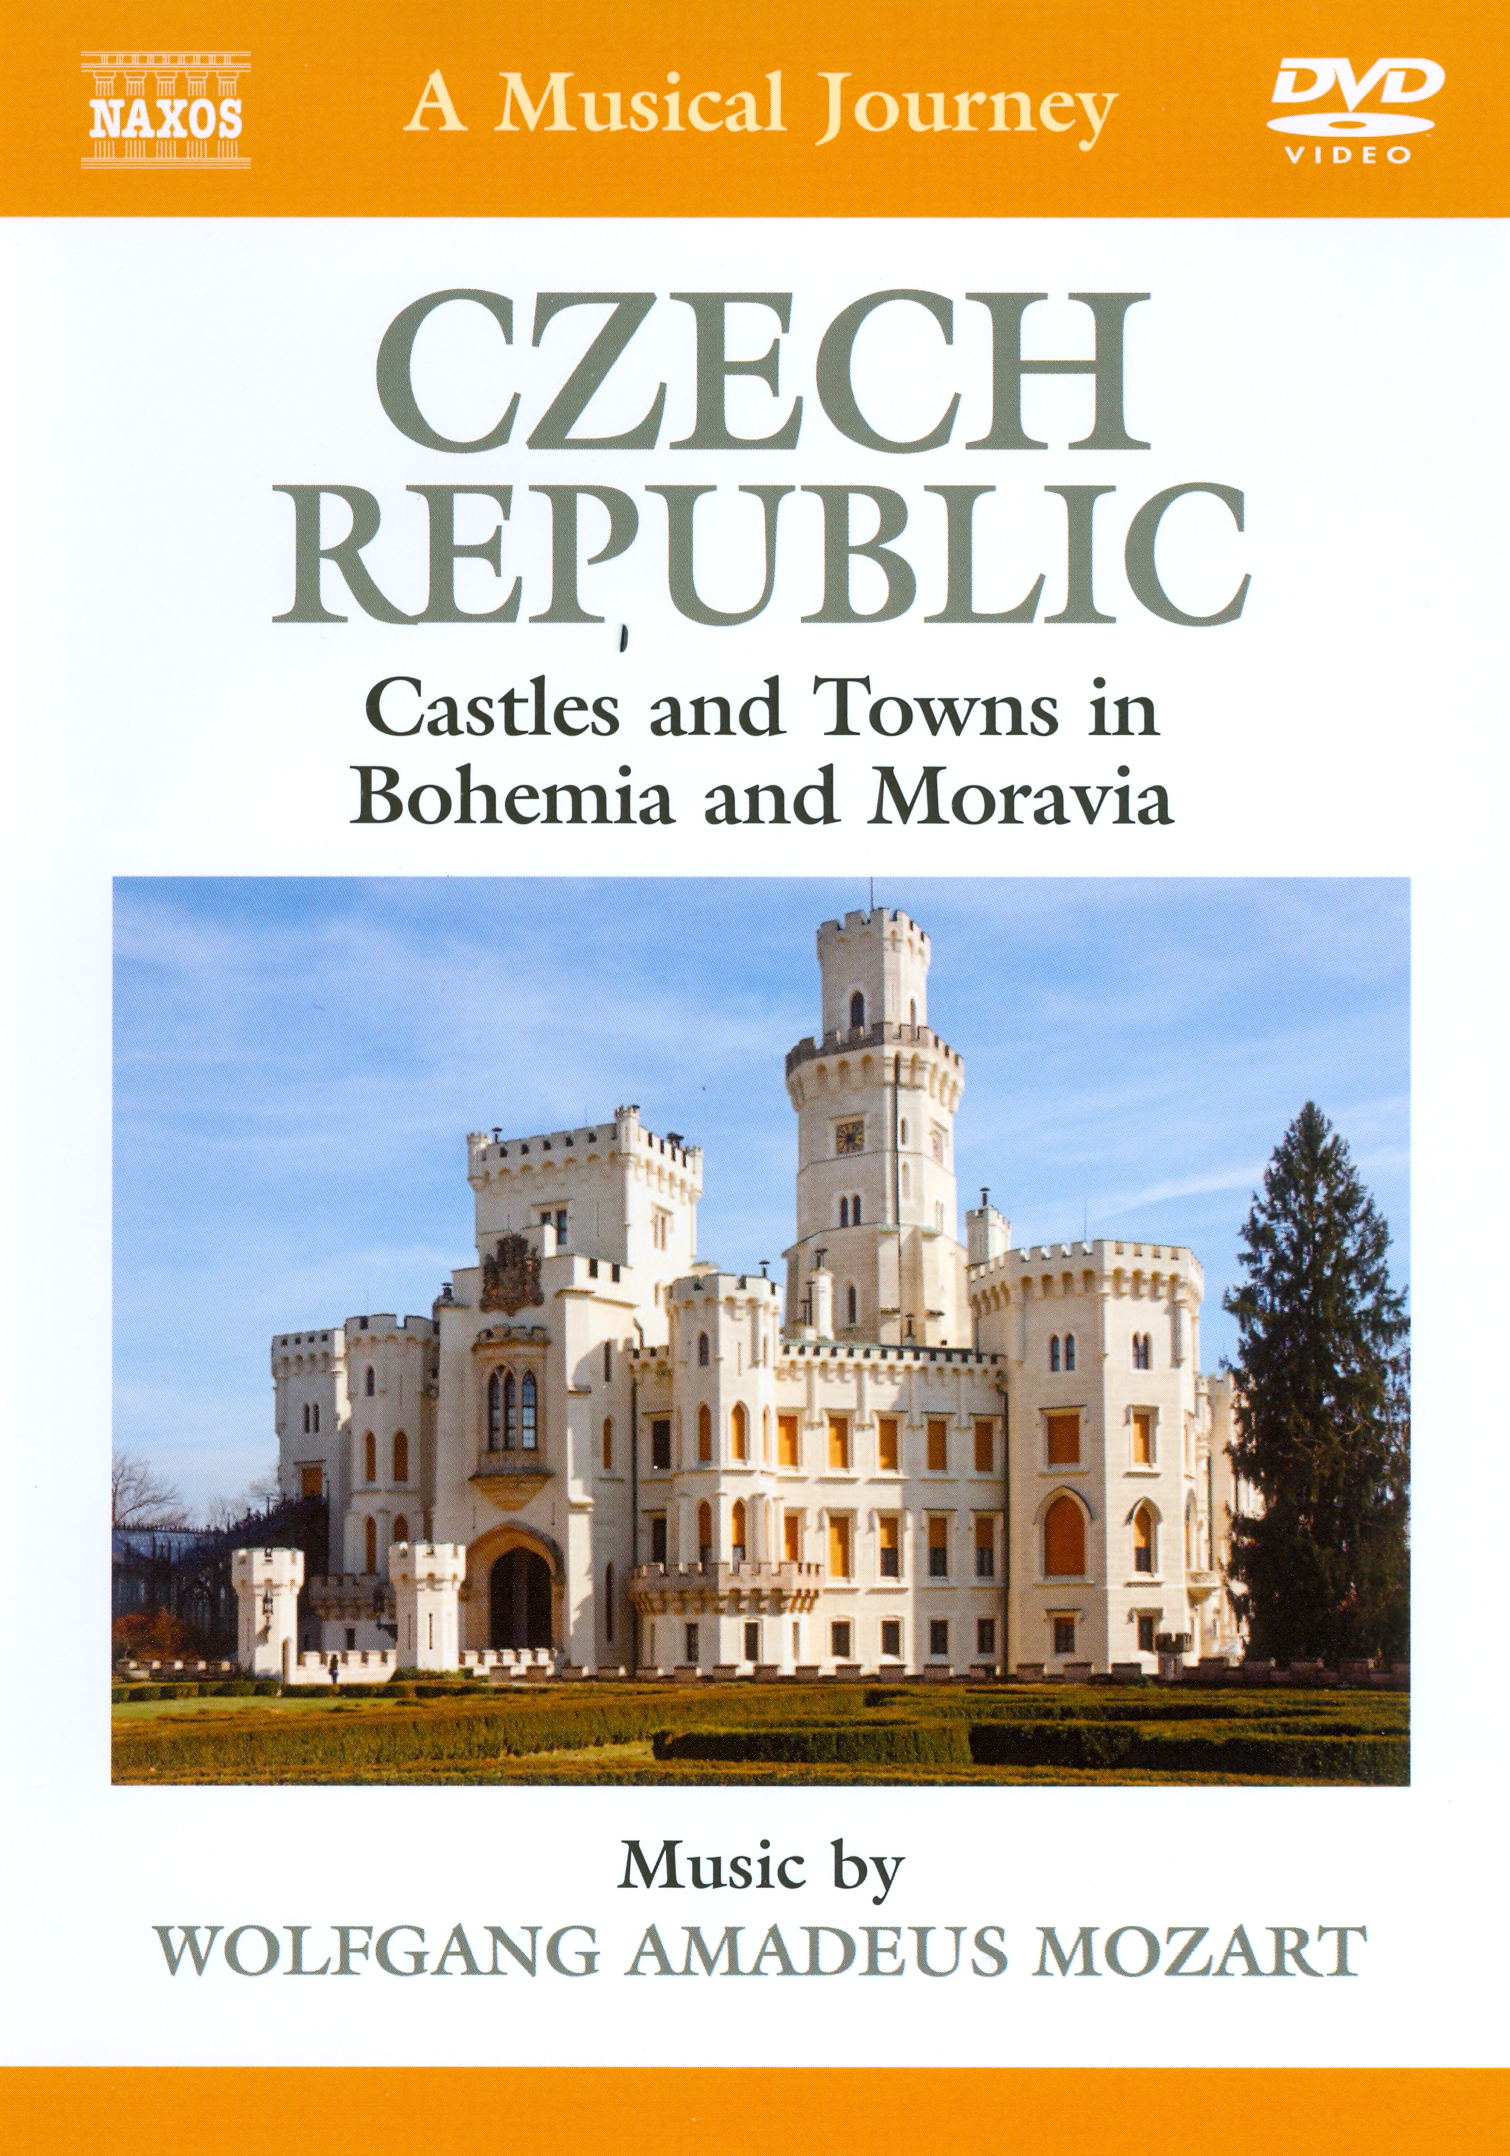 A Musical Journey: Czech Republic - Castles and Towns in Bohemia and Moravia